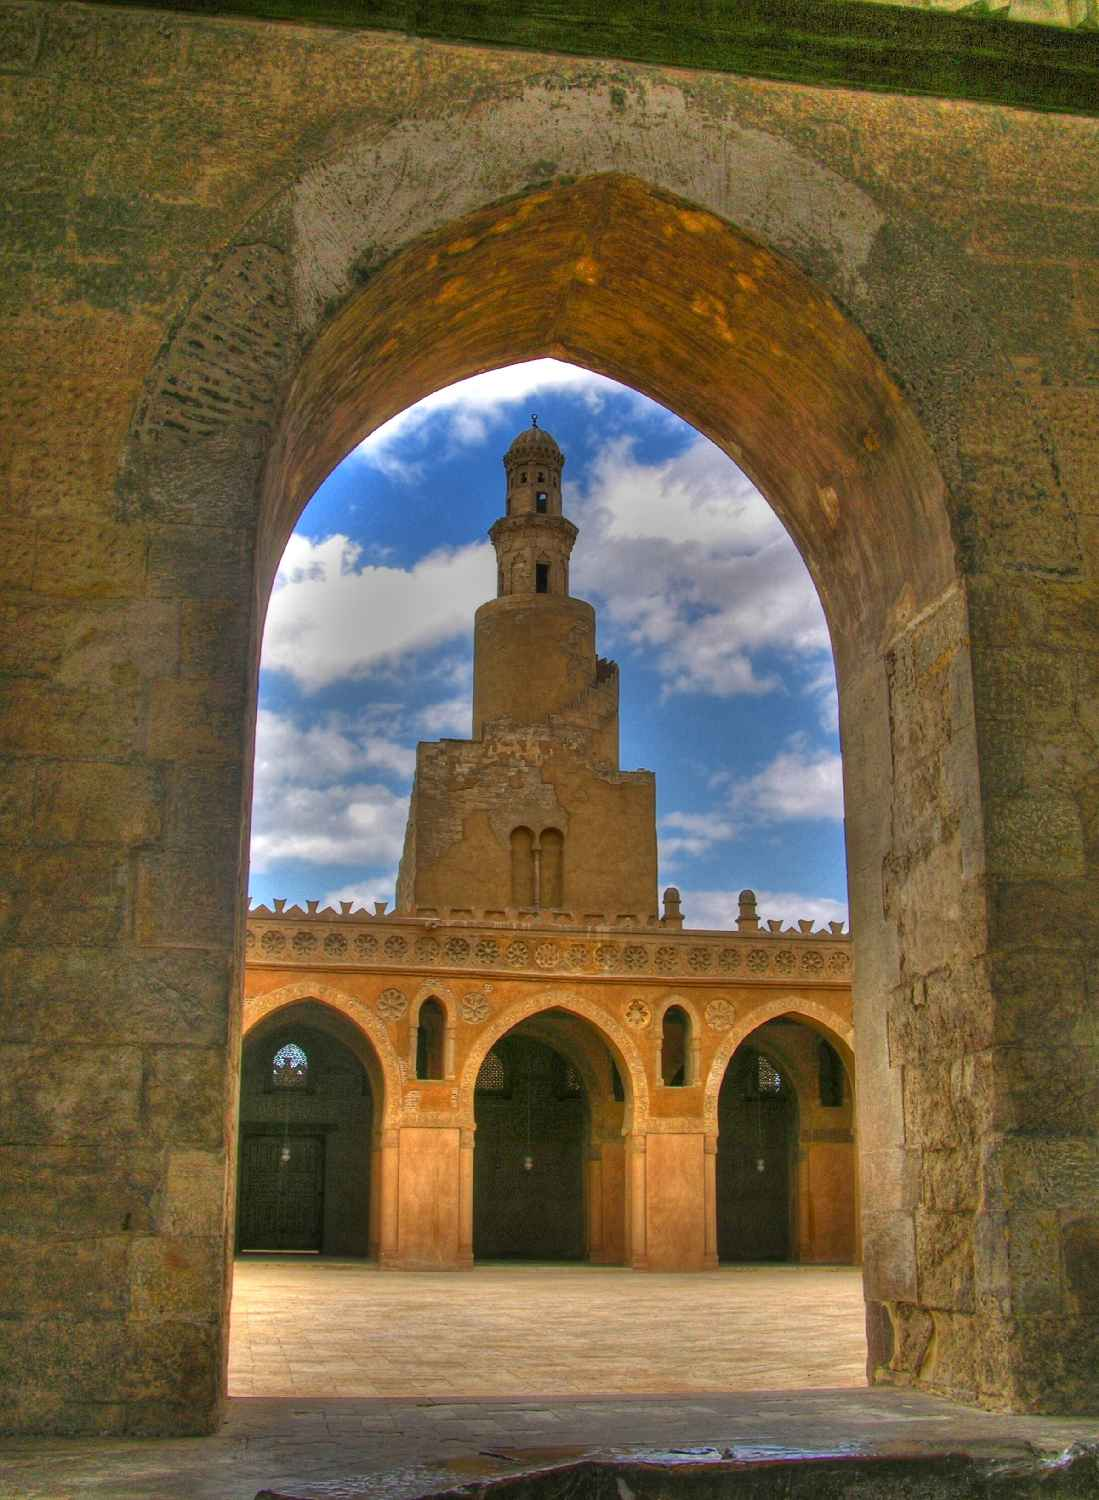 Ibn Tulun Mosque 2